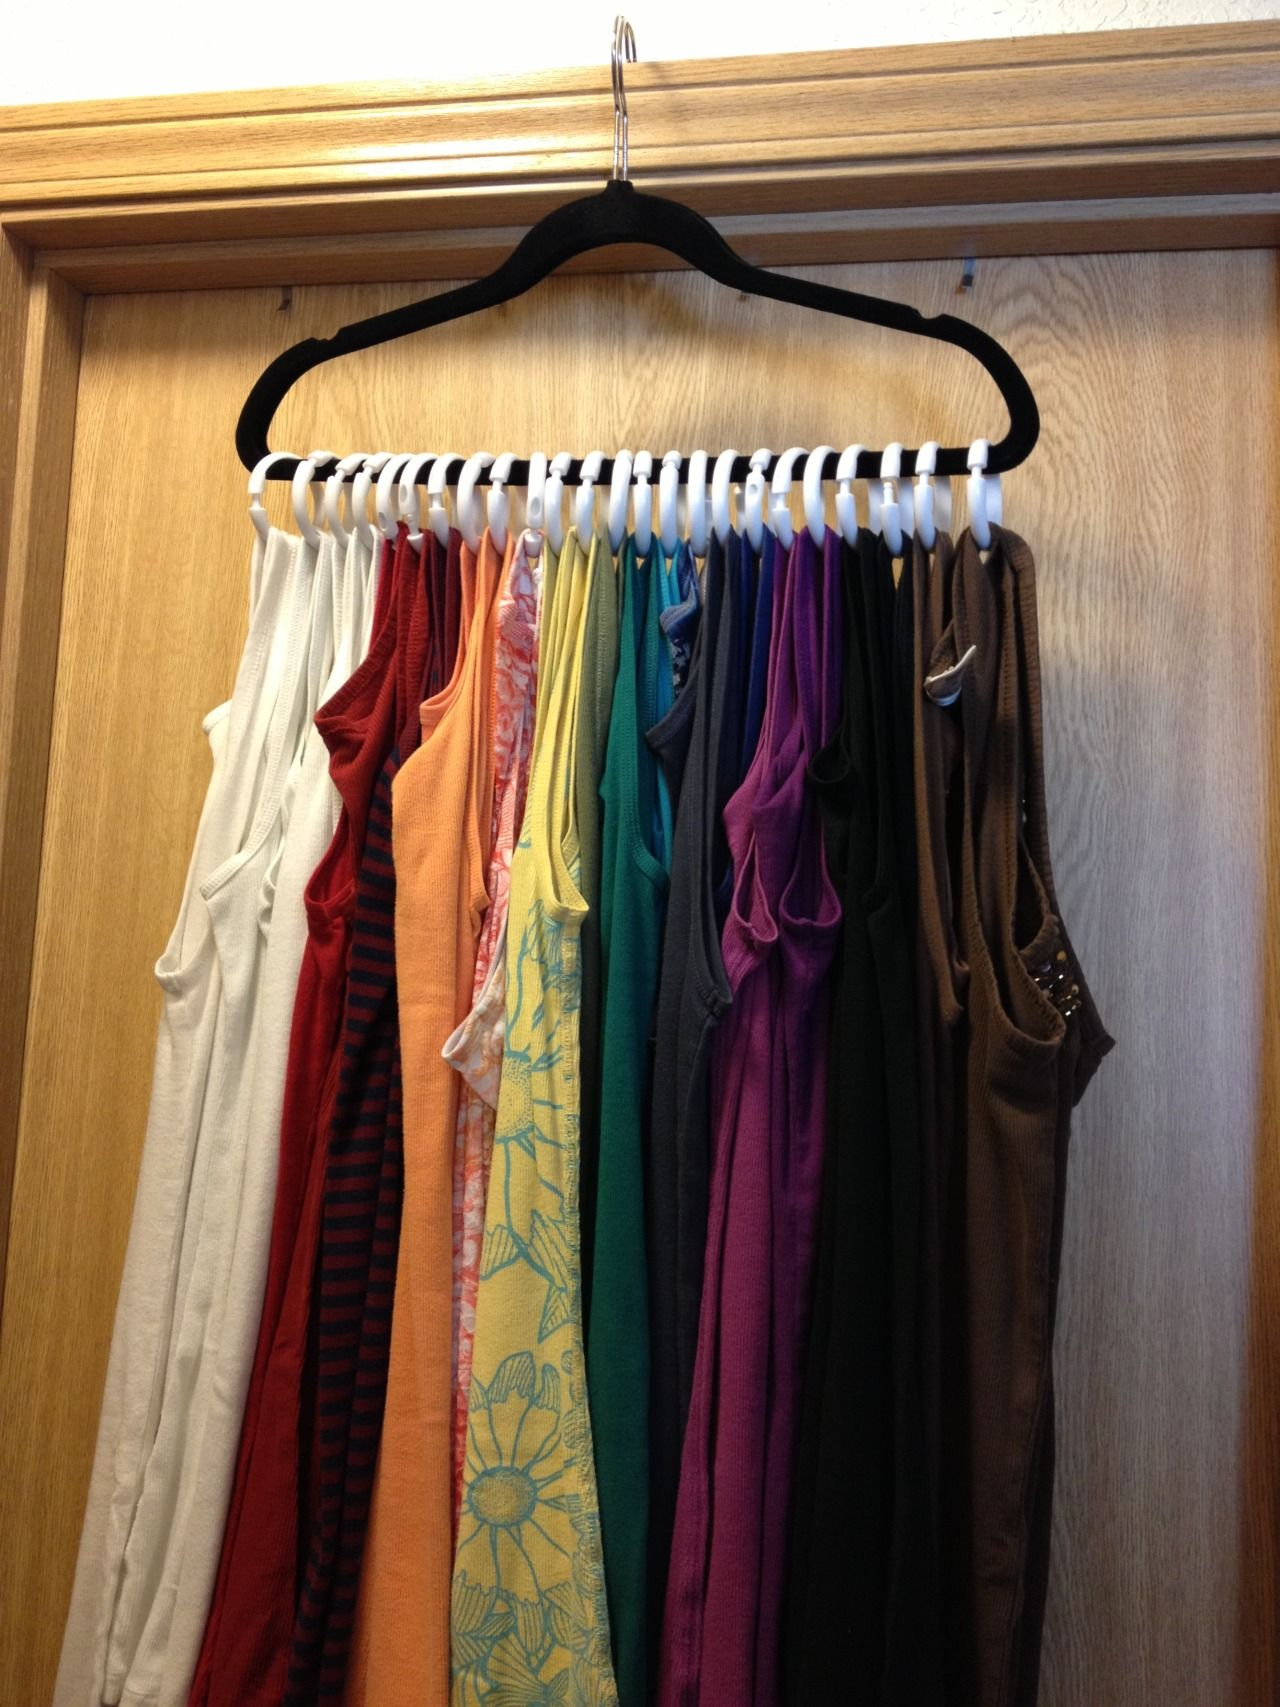 Best Tiny Closet Ideas On Pinterest Small Closet Storage - Cool diy coat rack for maximizing closet space